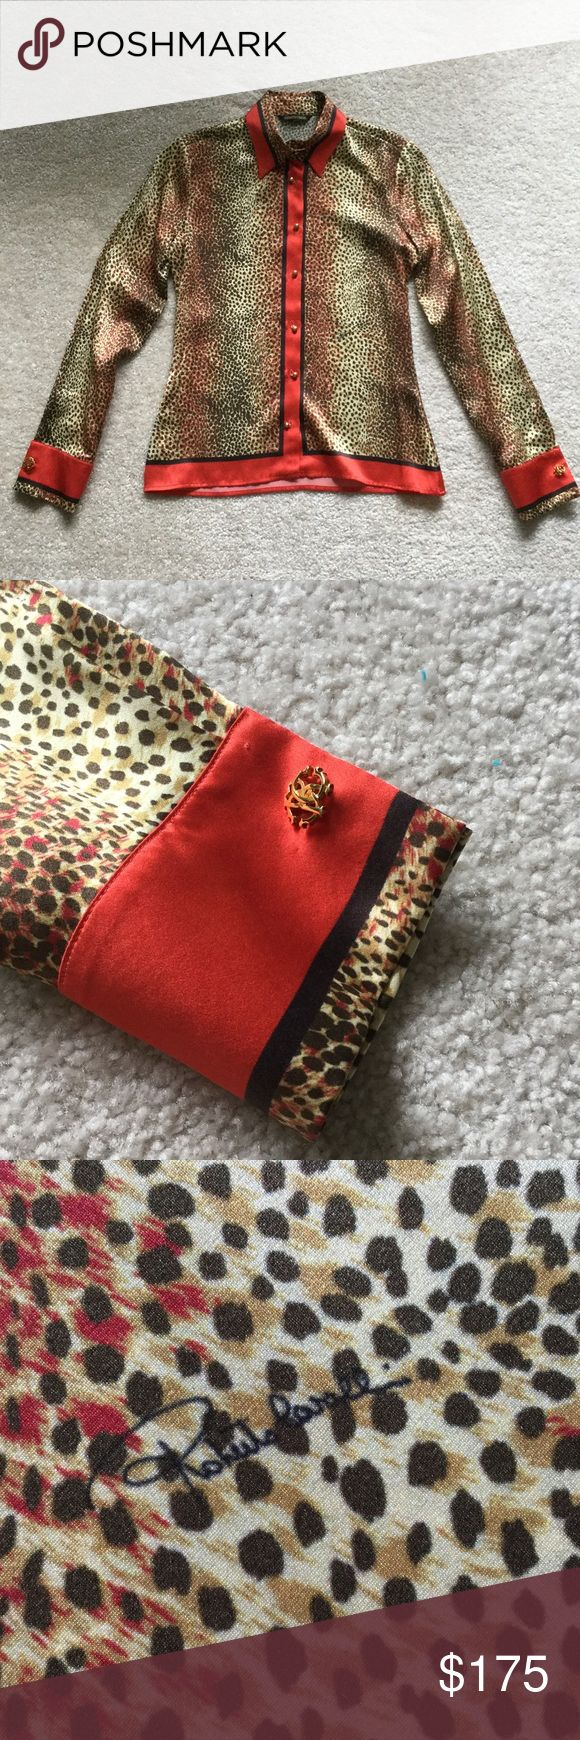 Roberto Cavalli silk leopard and red blouse sz38 Perfect condition, never worn red trimmed leopard print silk blouse, long sleeves with gold RC customized cufflinks which could be worn with other shirts, beautiful fitted and timeless print and design Roberto Cavalli Tops Blouses